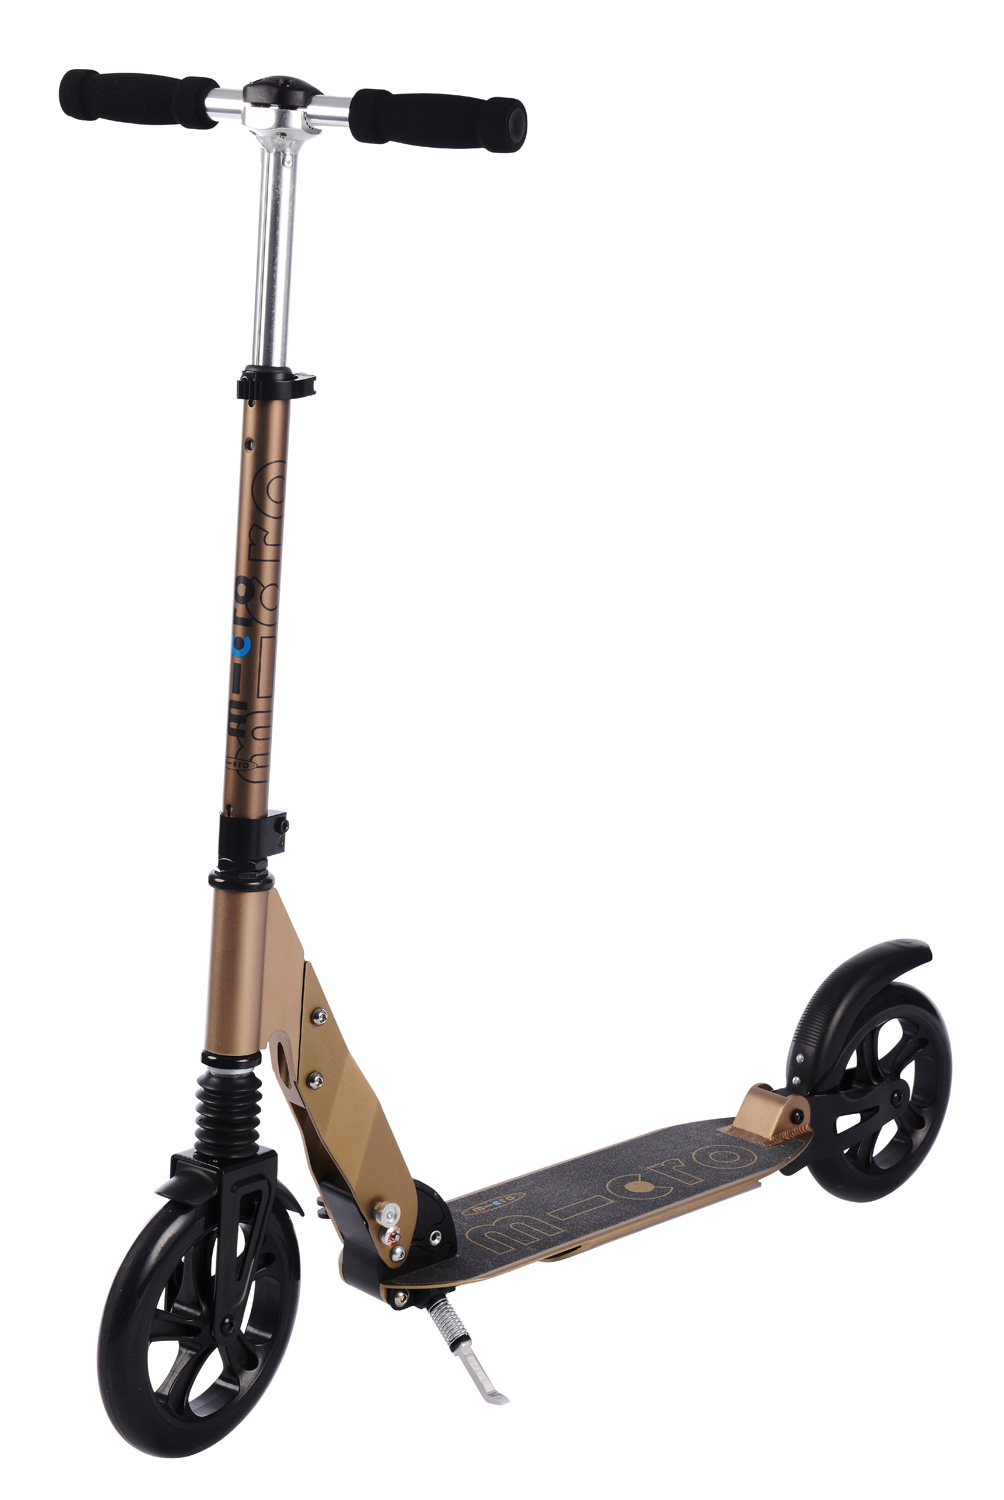 micro scooter suspension 200 mm tretroller microscooter. Black Bedroom Furniture Sets. Home Design Ideas